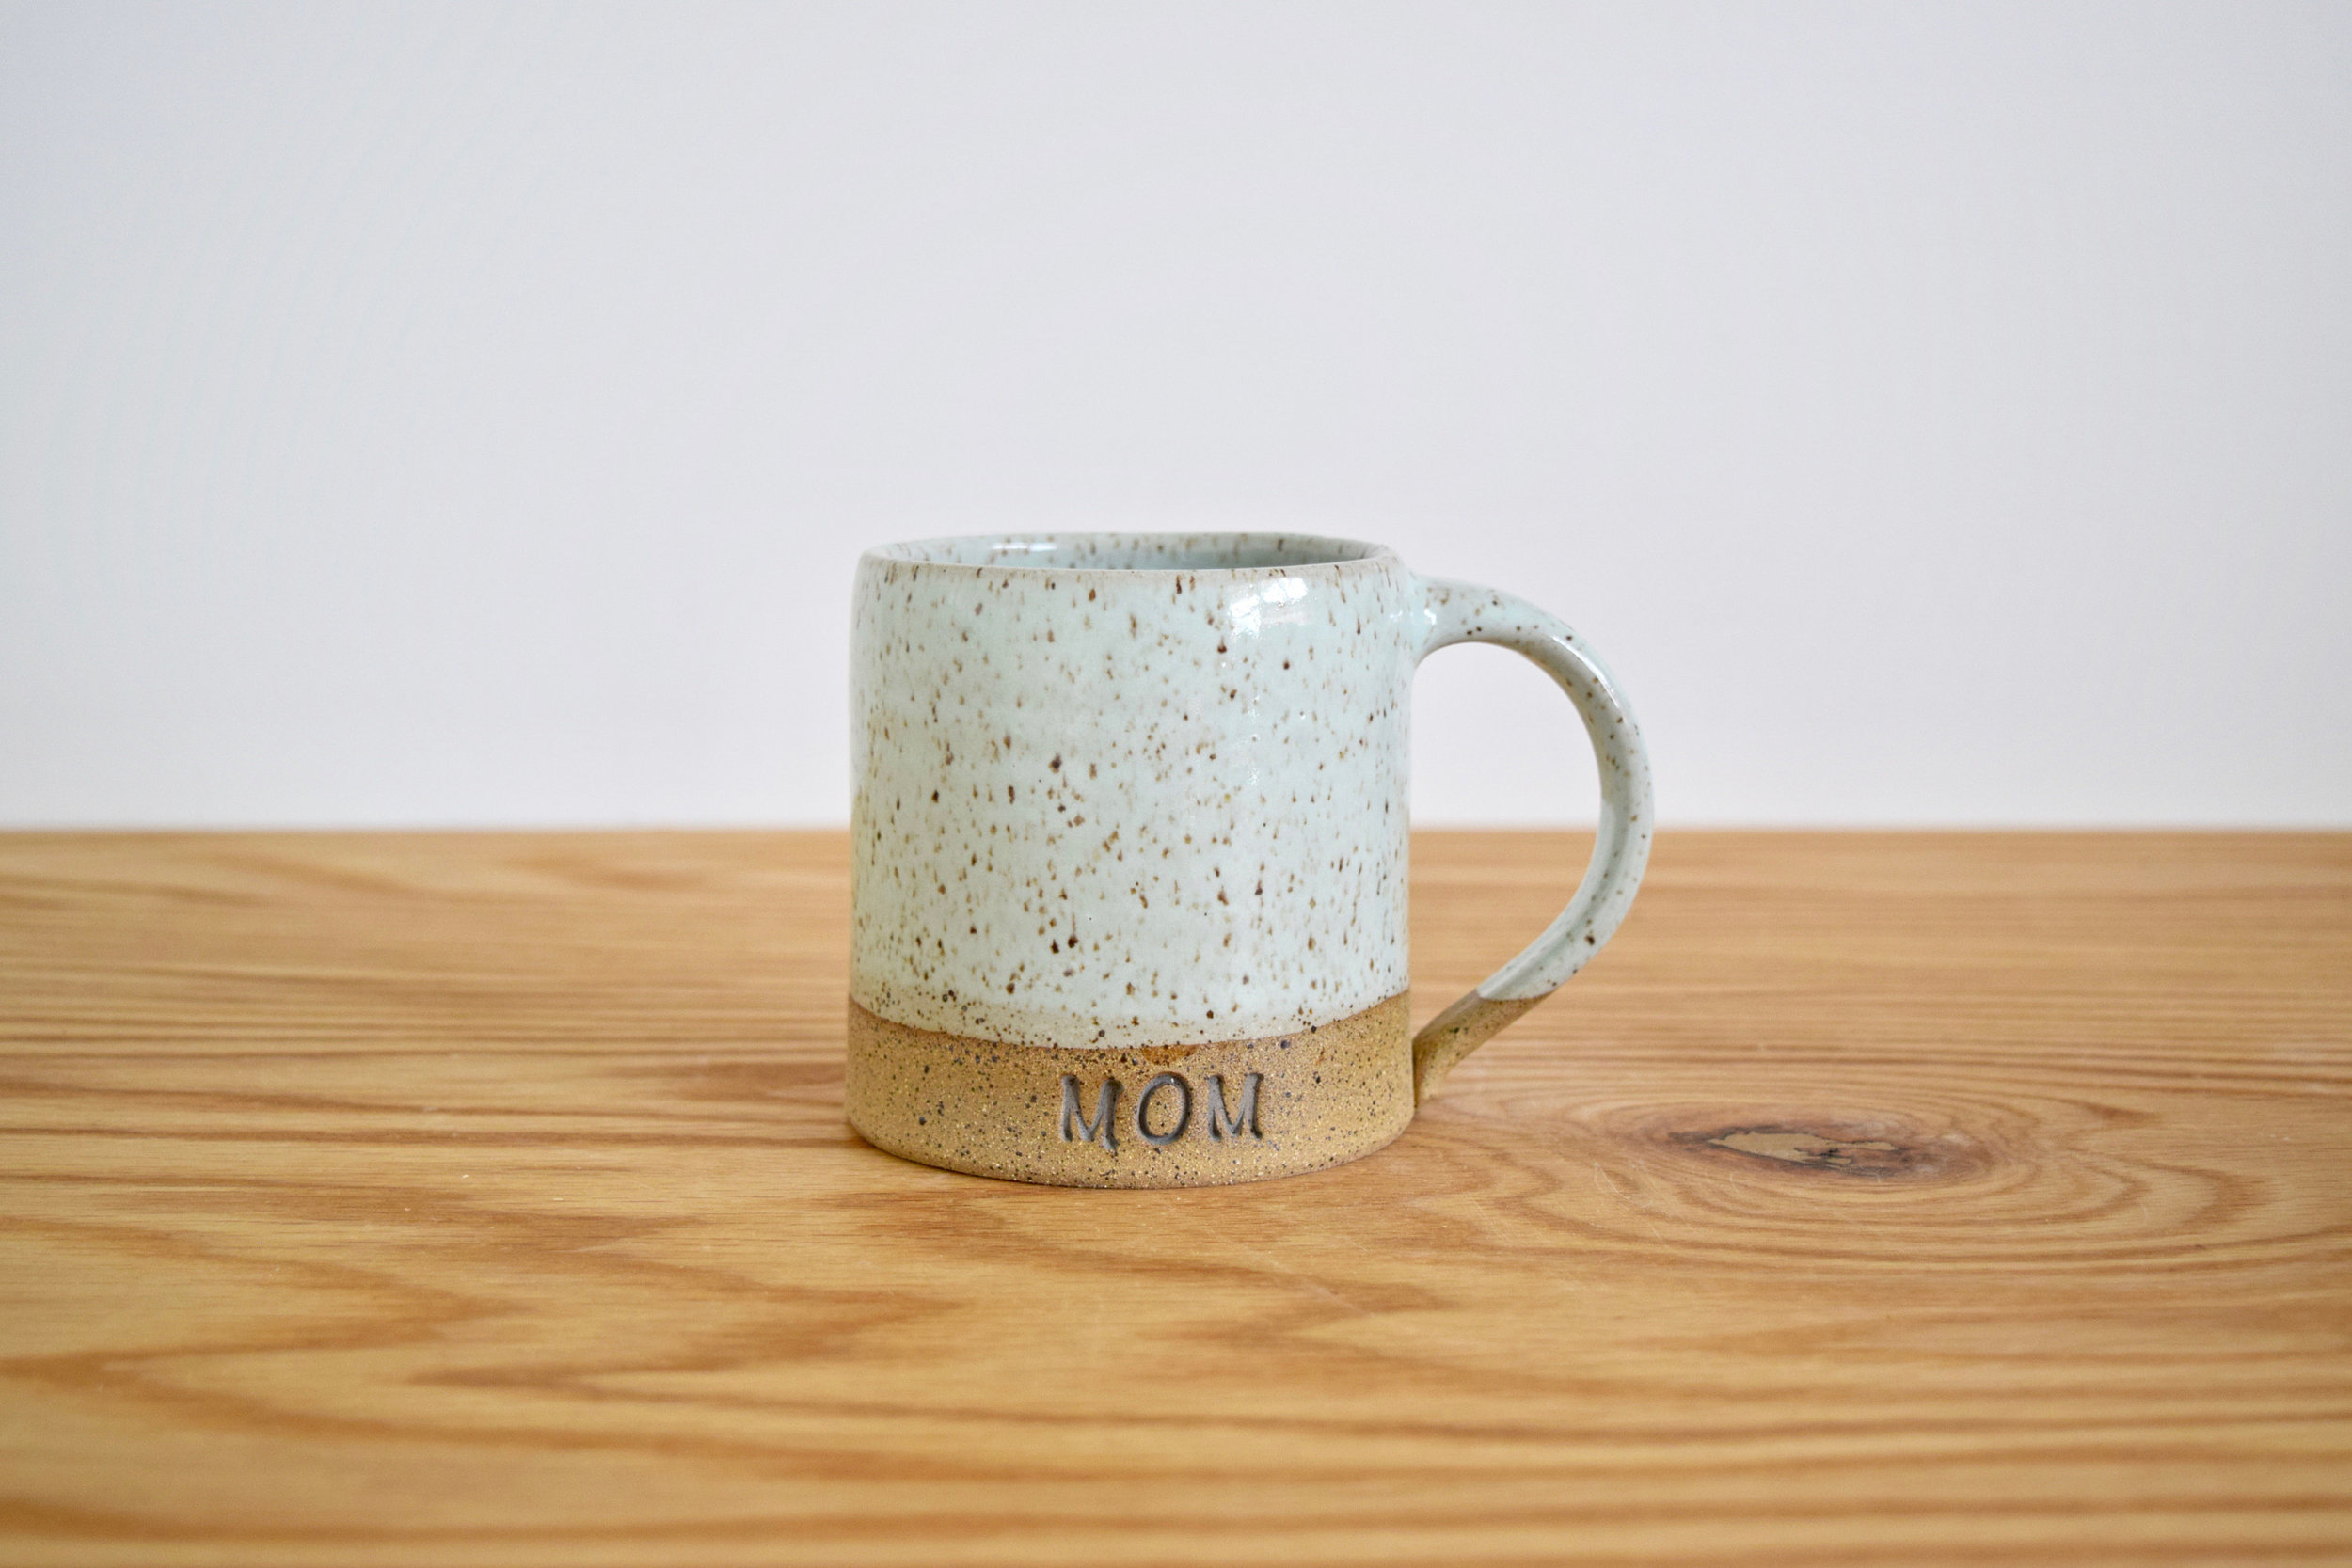 The Coffee Lover - Customize A Coffee Mug Just For Him